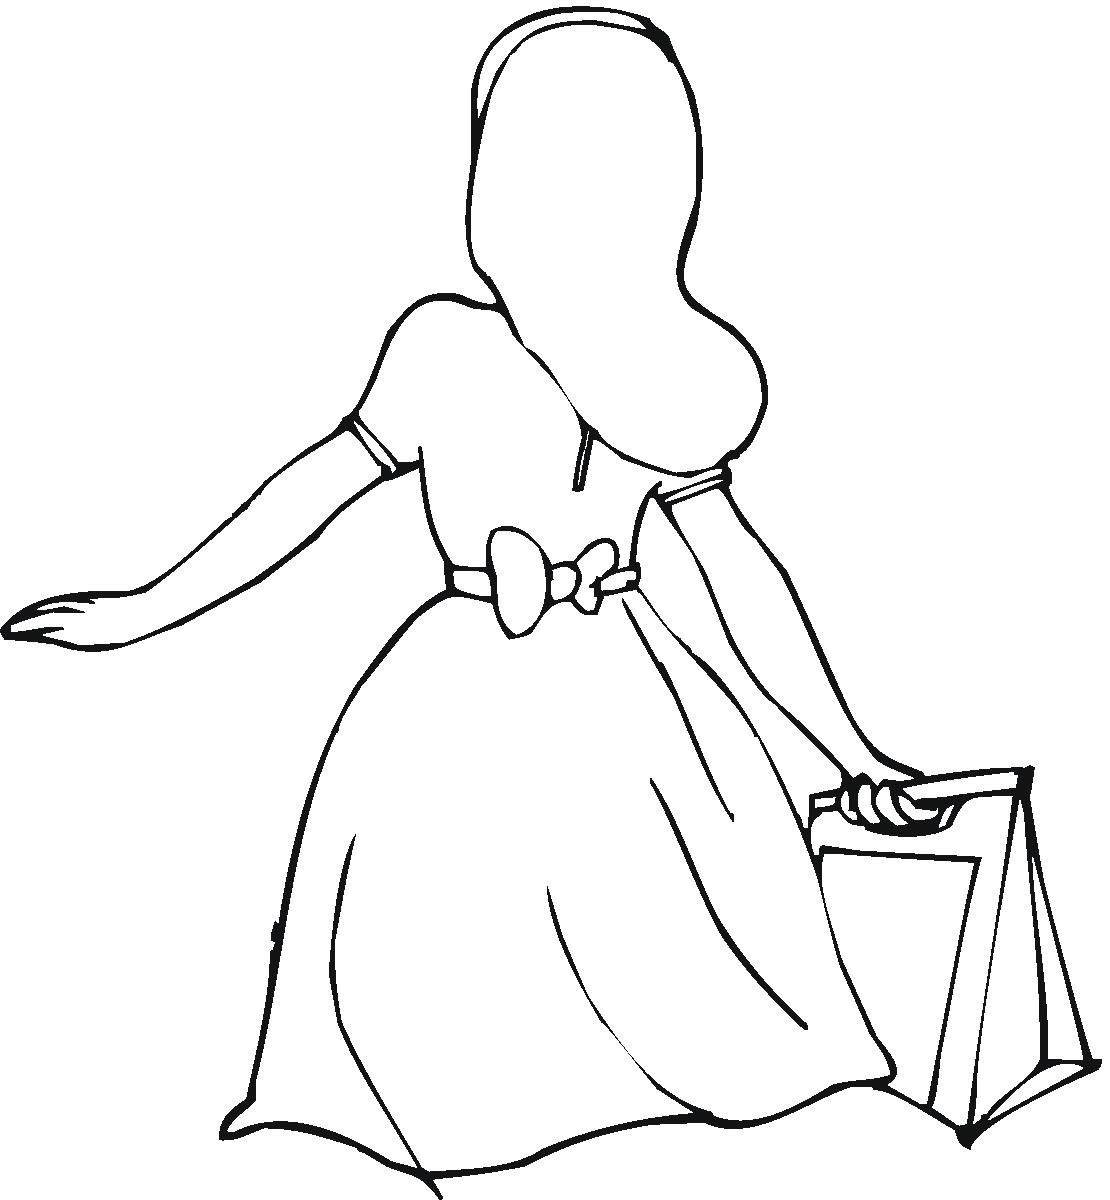 Coloring Pages For Girls 11 And Up  Coloring Pages For Girls 13 And Up